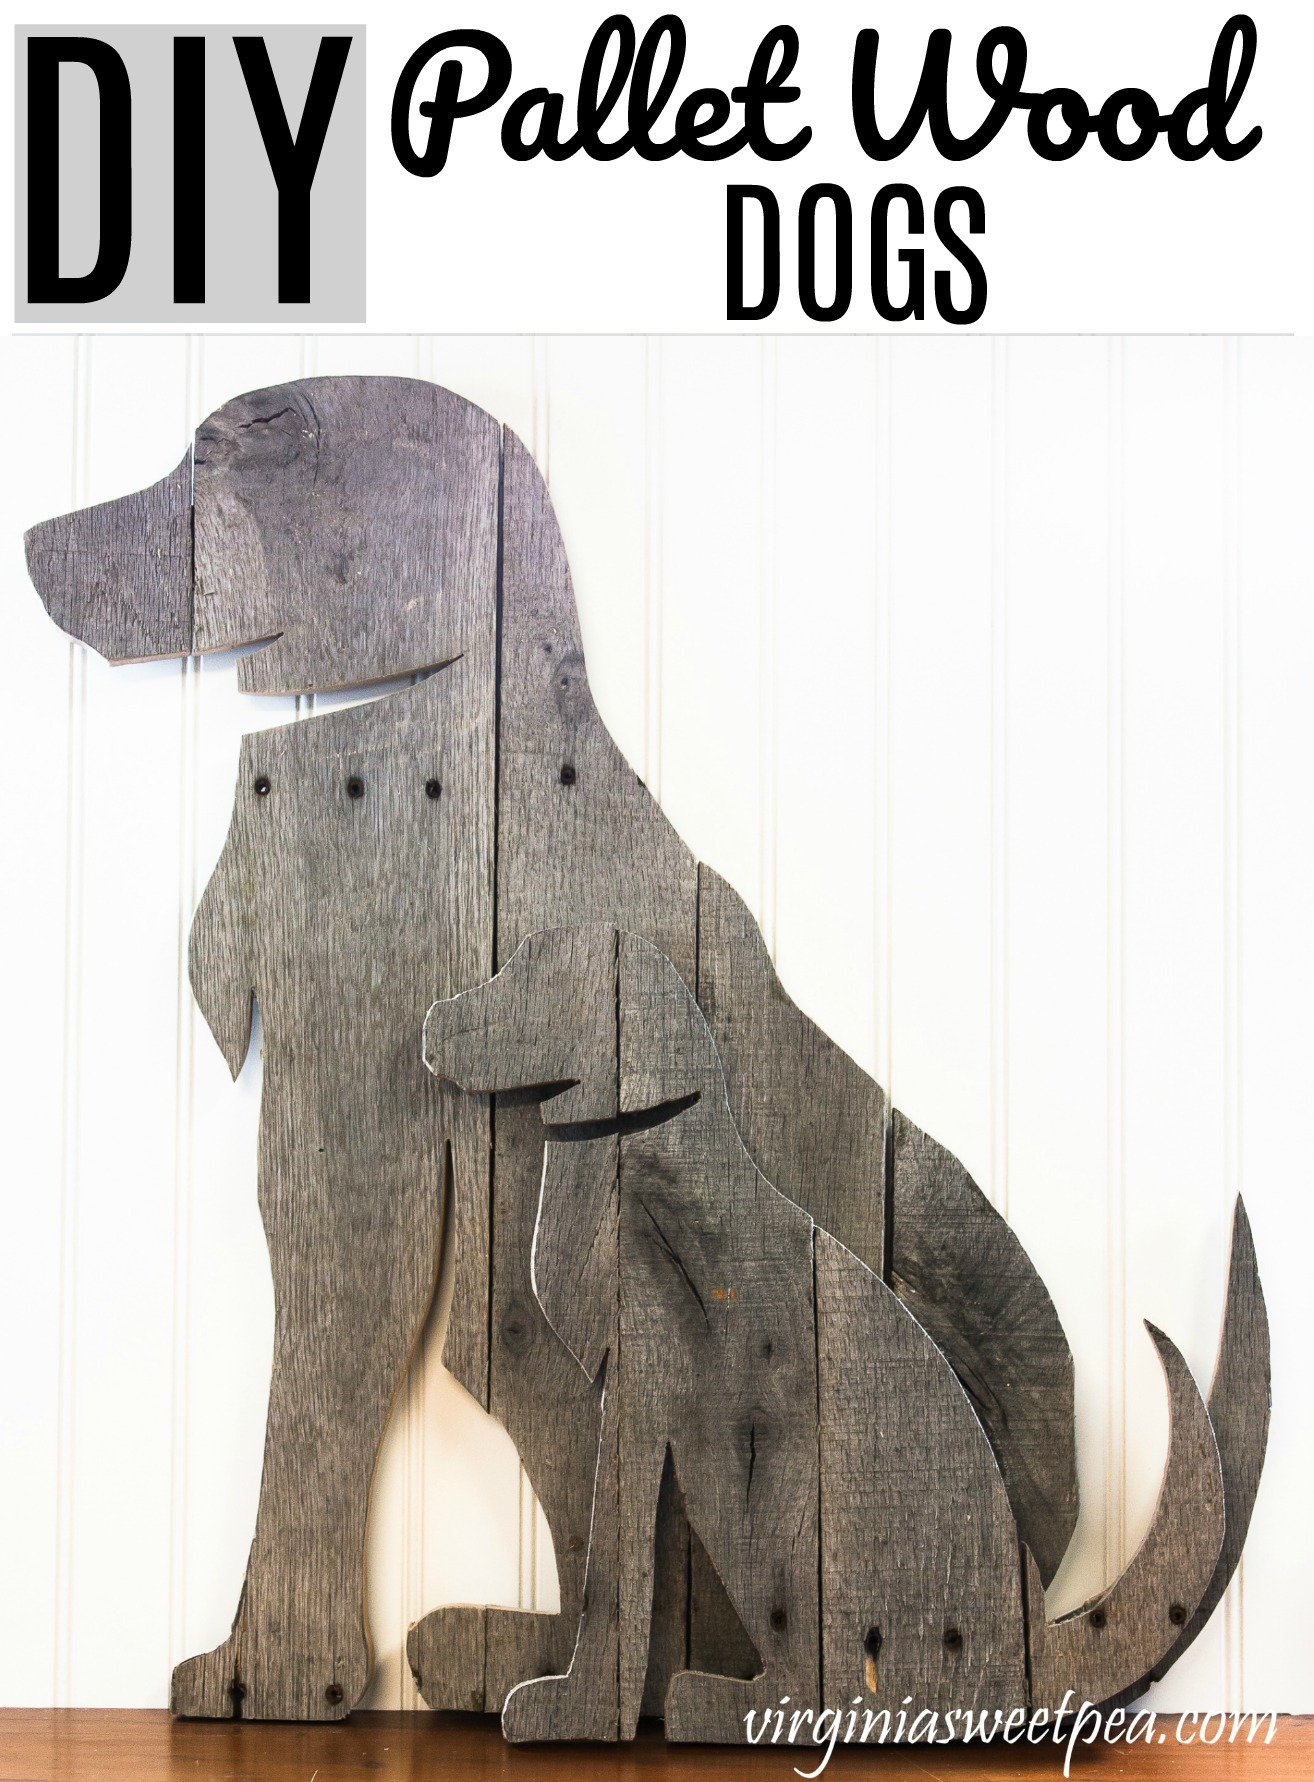 DIY Pallet Wood Dogs - Make decorative dogs using pallet wood. This step-by-step tutorial shows you how.